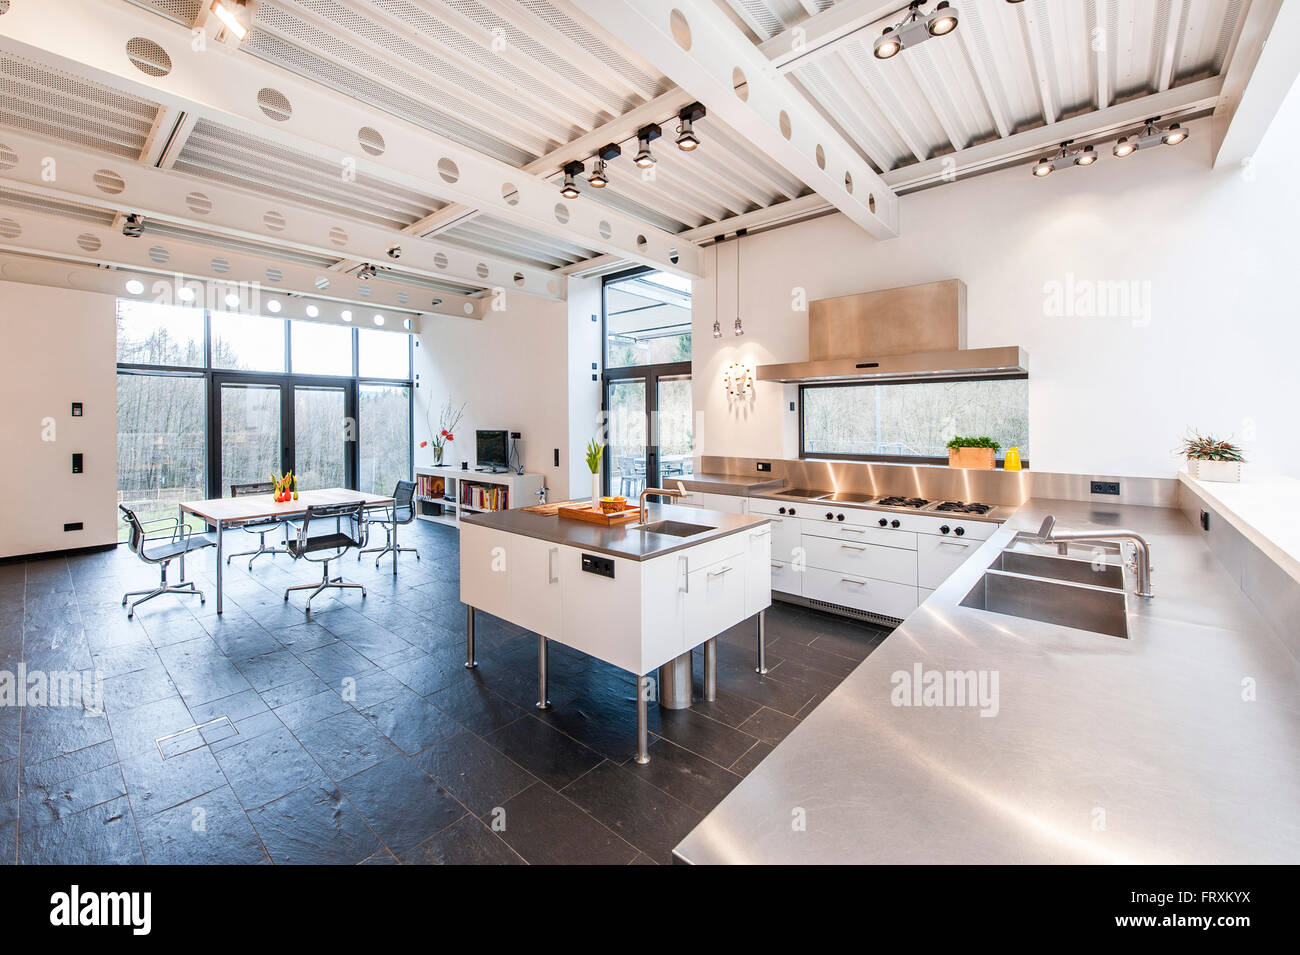 Bauhaus Villa Open Plan Kitchen Inside A Bauhaus Villa Sauerland Germany Stock